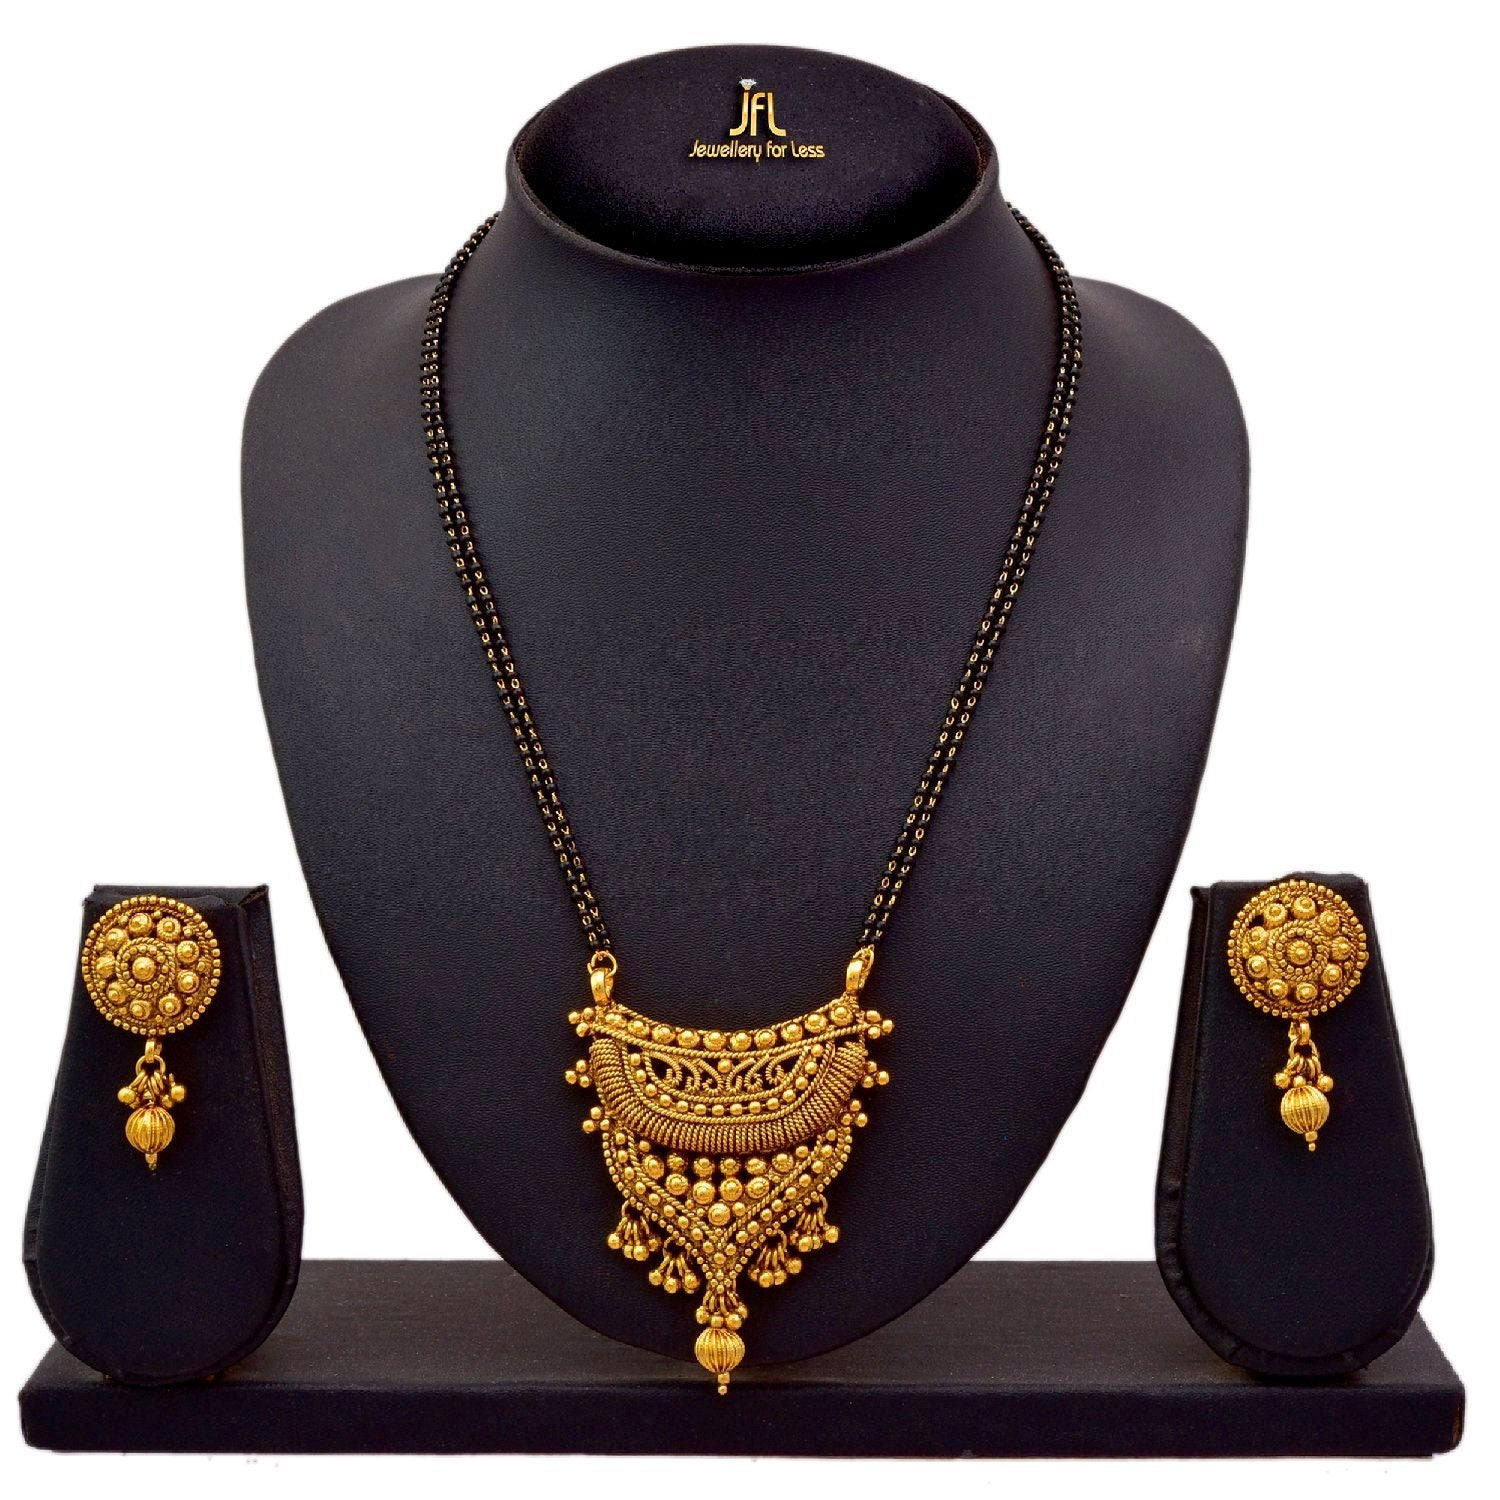 JFL - Traditional Ethnic One Gram Gold Plated Mangalsutra With Earring And Double Black Beaded Chain For Women